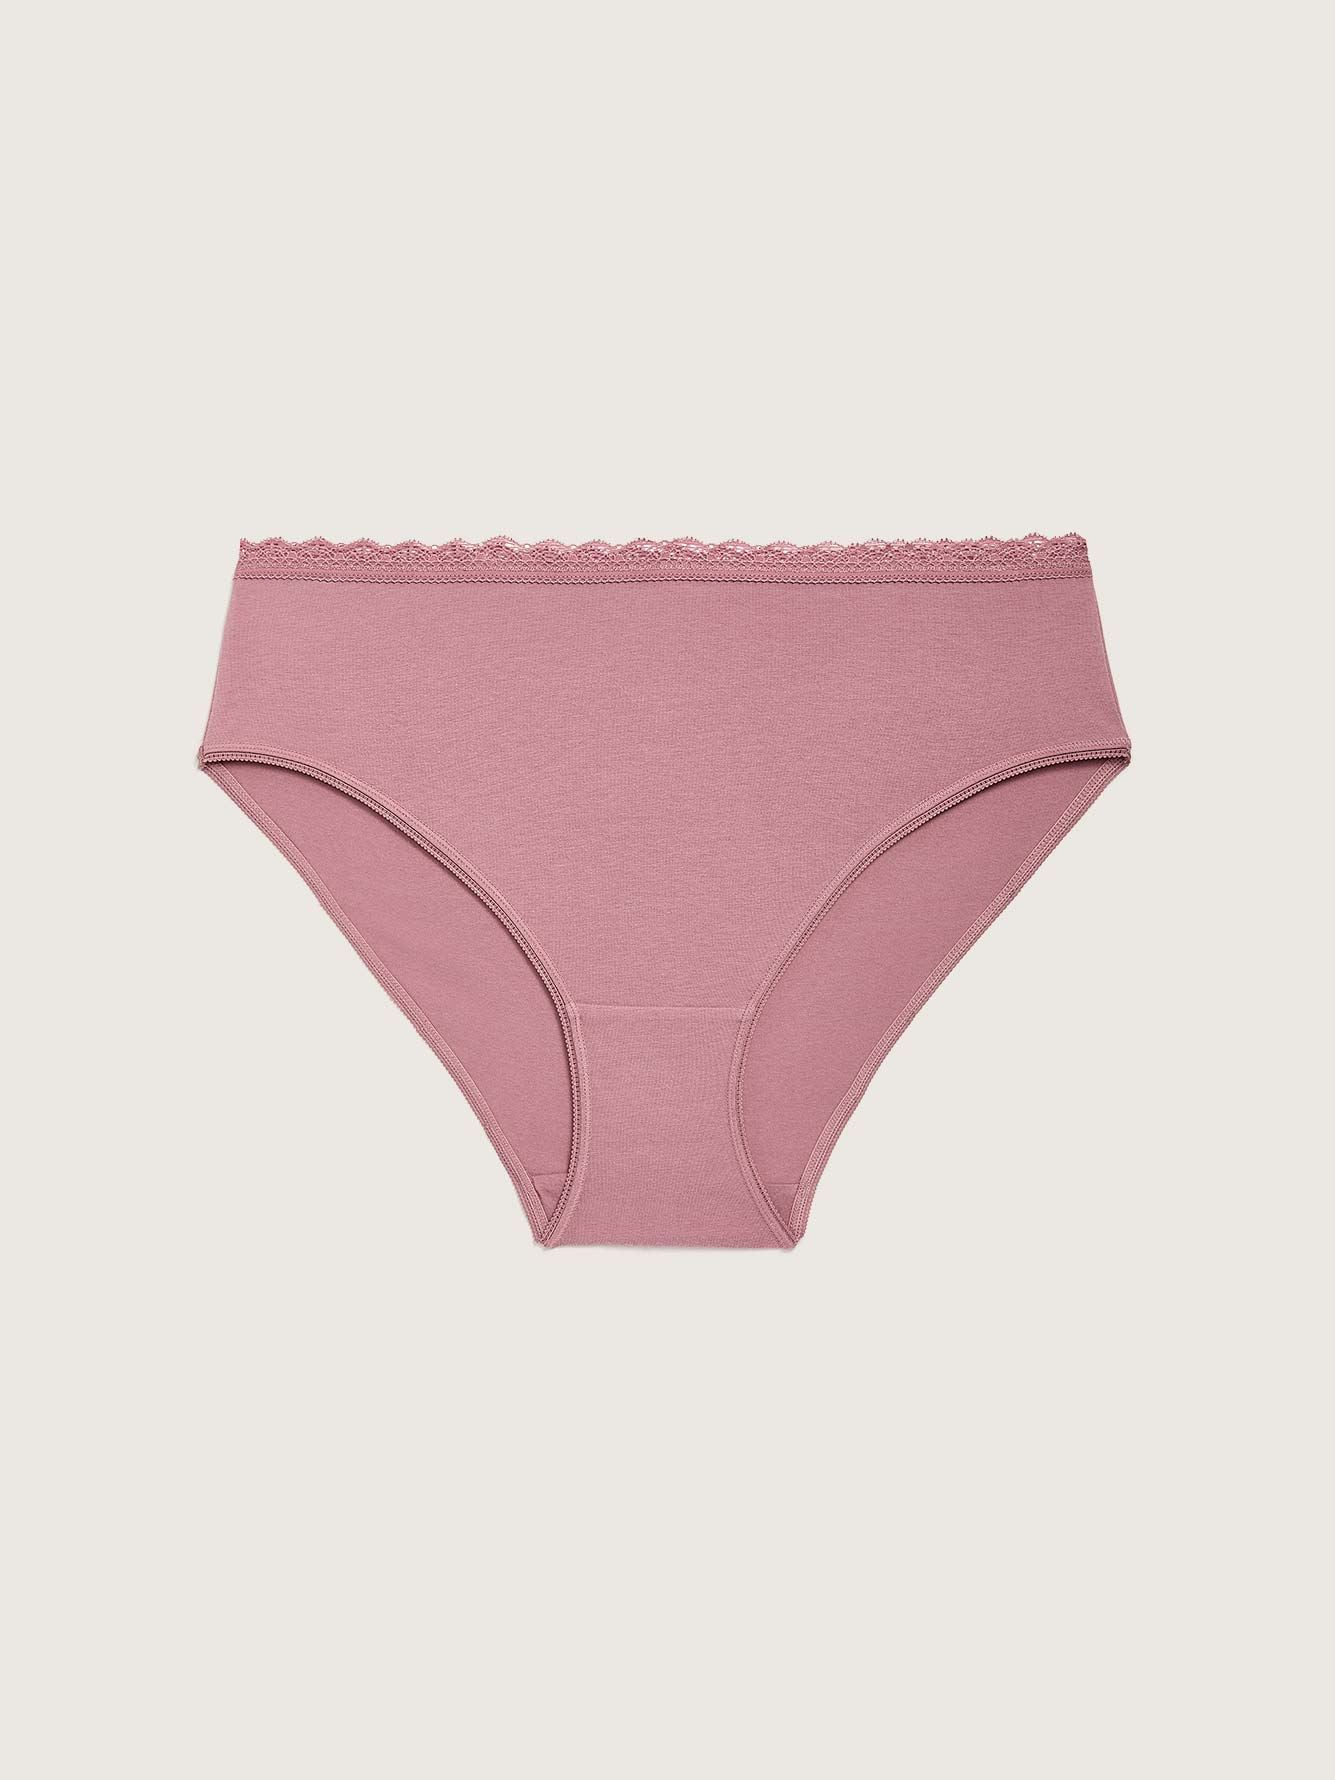 Solid Cotton High Cut Panty - Addition Elle